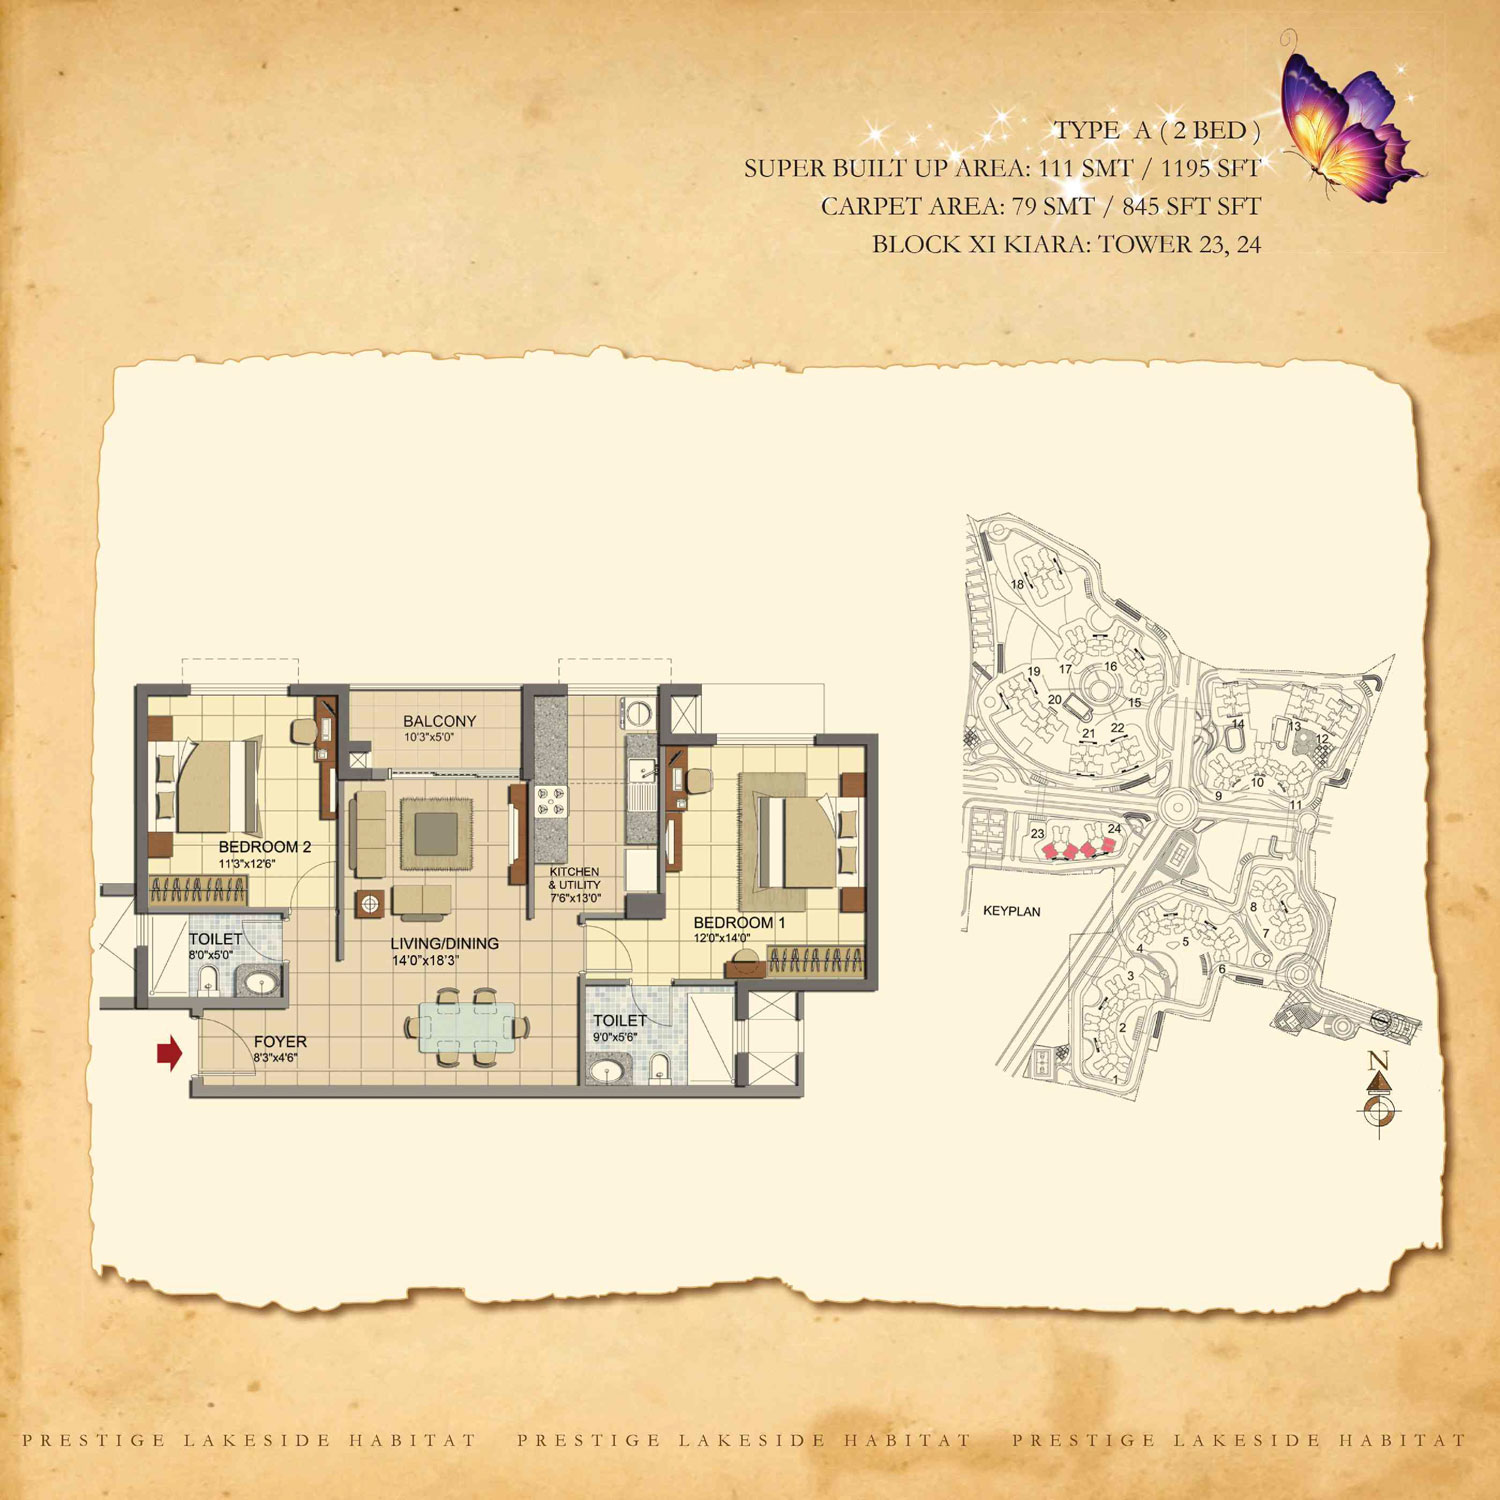 Type A - 1195 Sq Ft